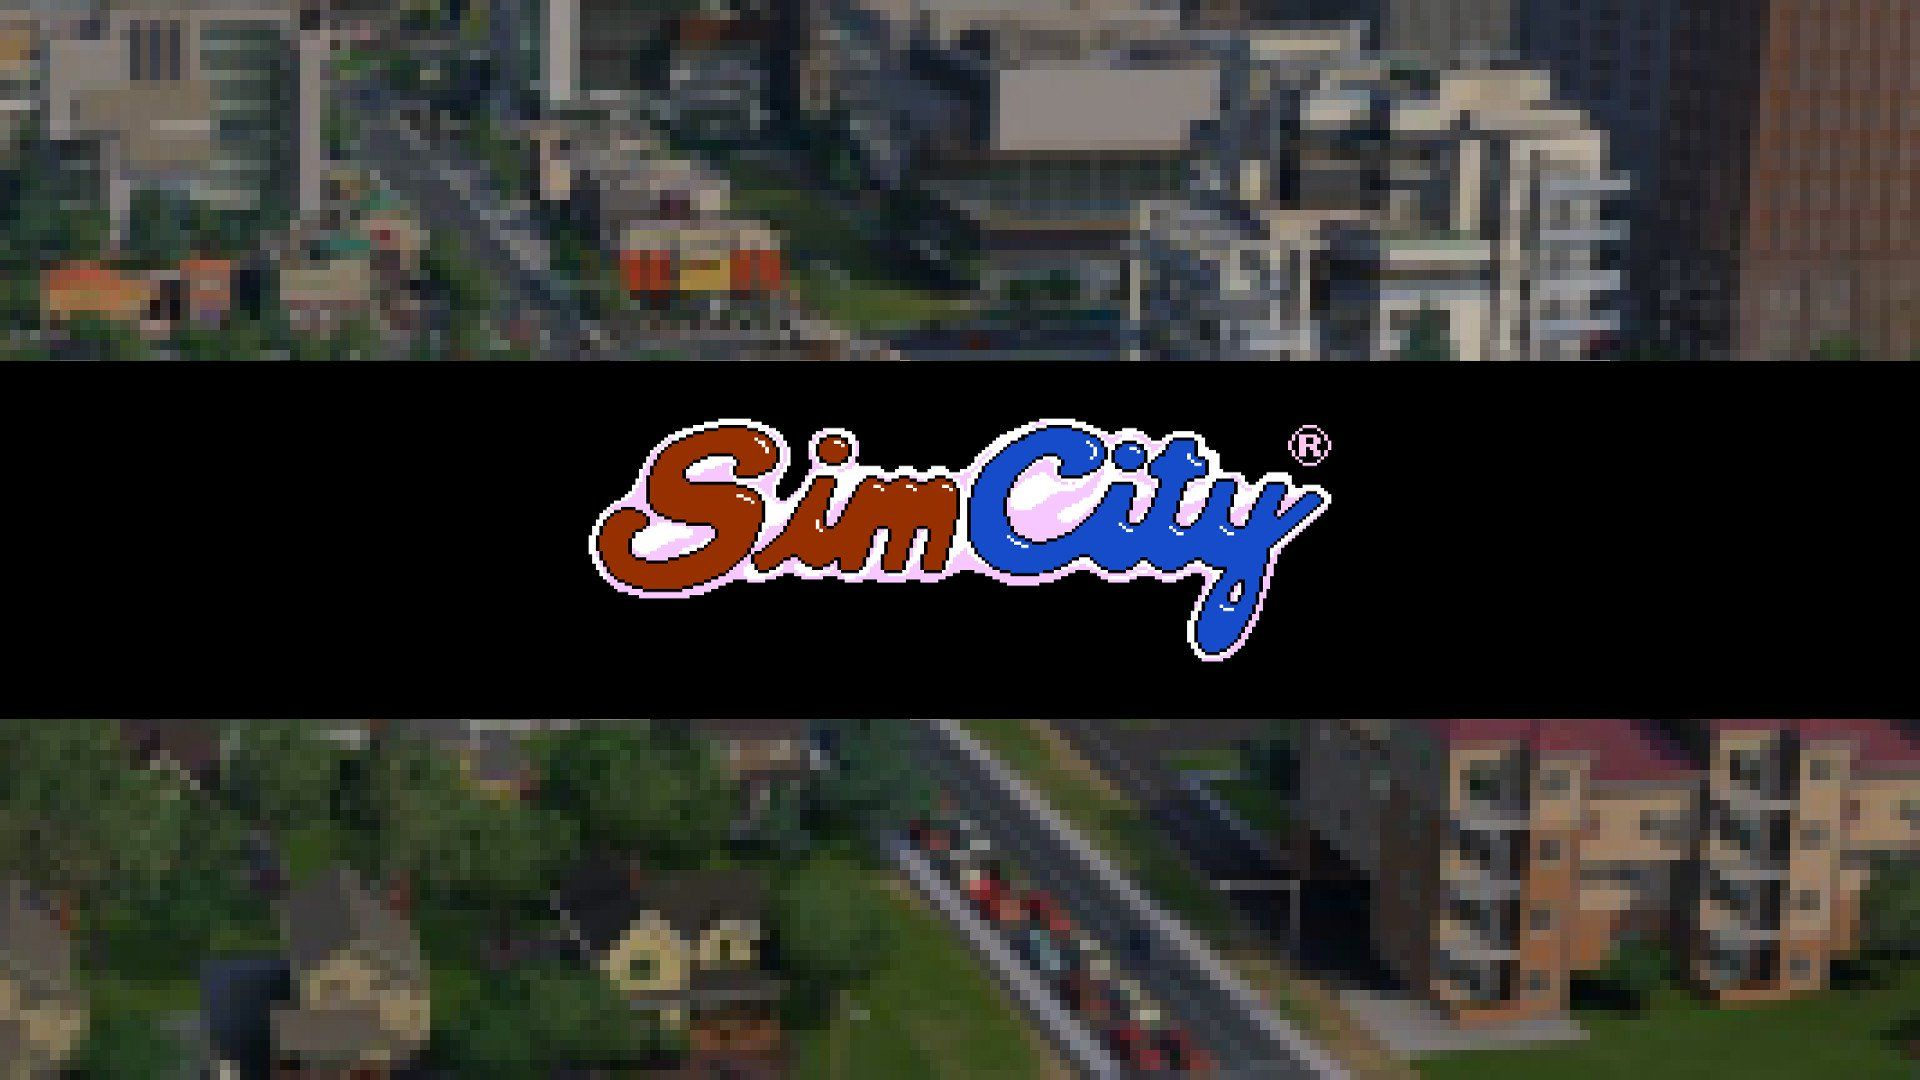 Simcity Nes Prototype Digitized And Dissected By Video Game History Foundation With Images Video Games City Building Game Latest Games